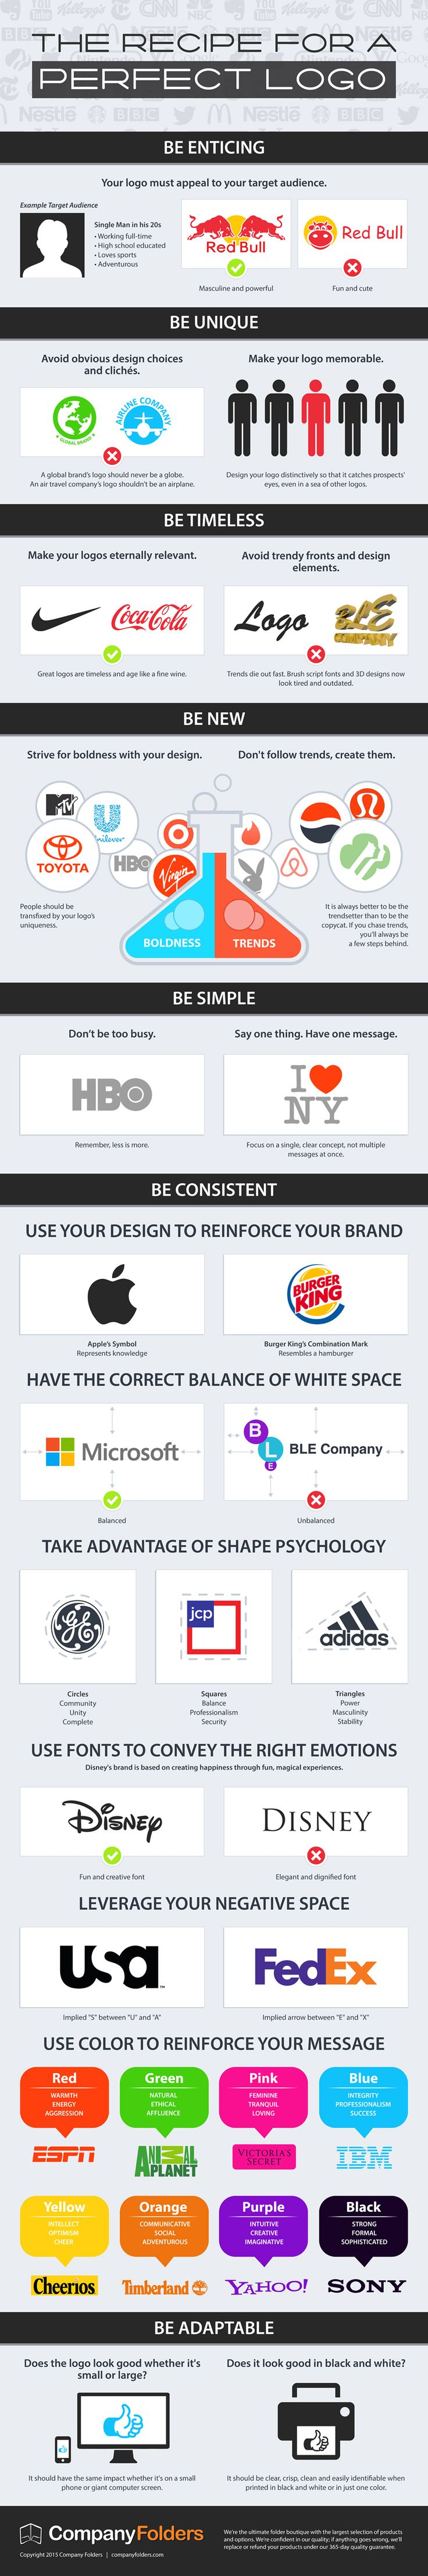 the recipe for a perfect business logo infographic how to design - Graphic Design Business Ideas